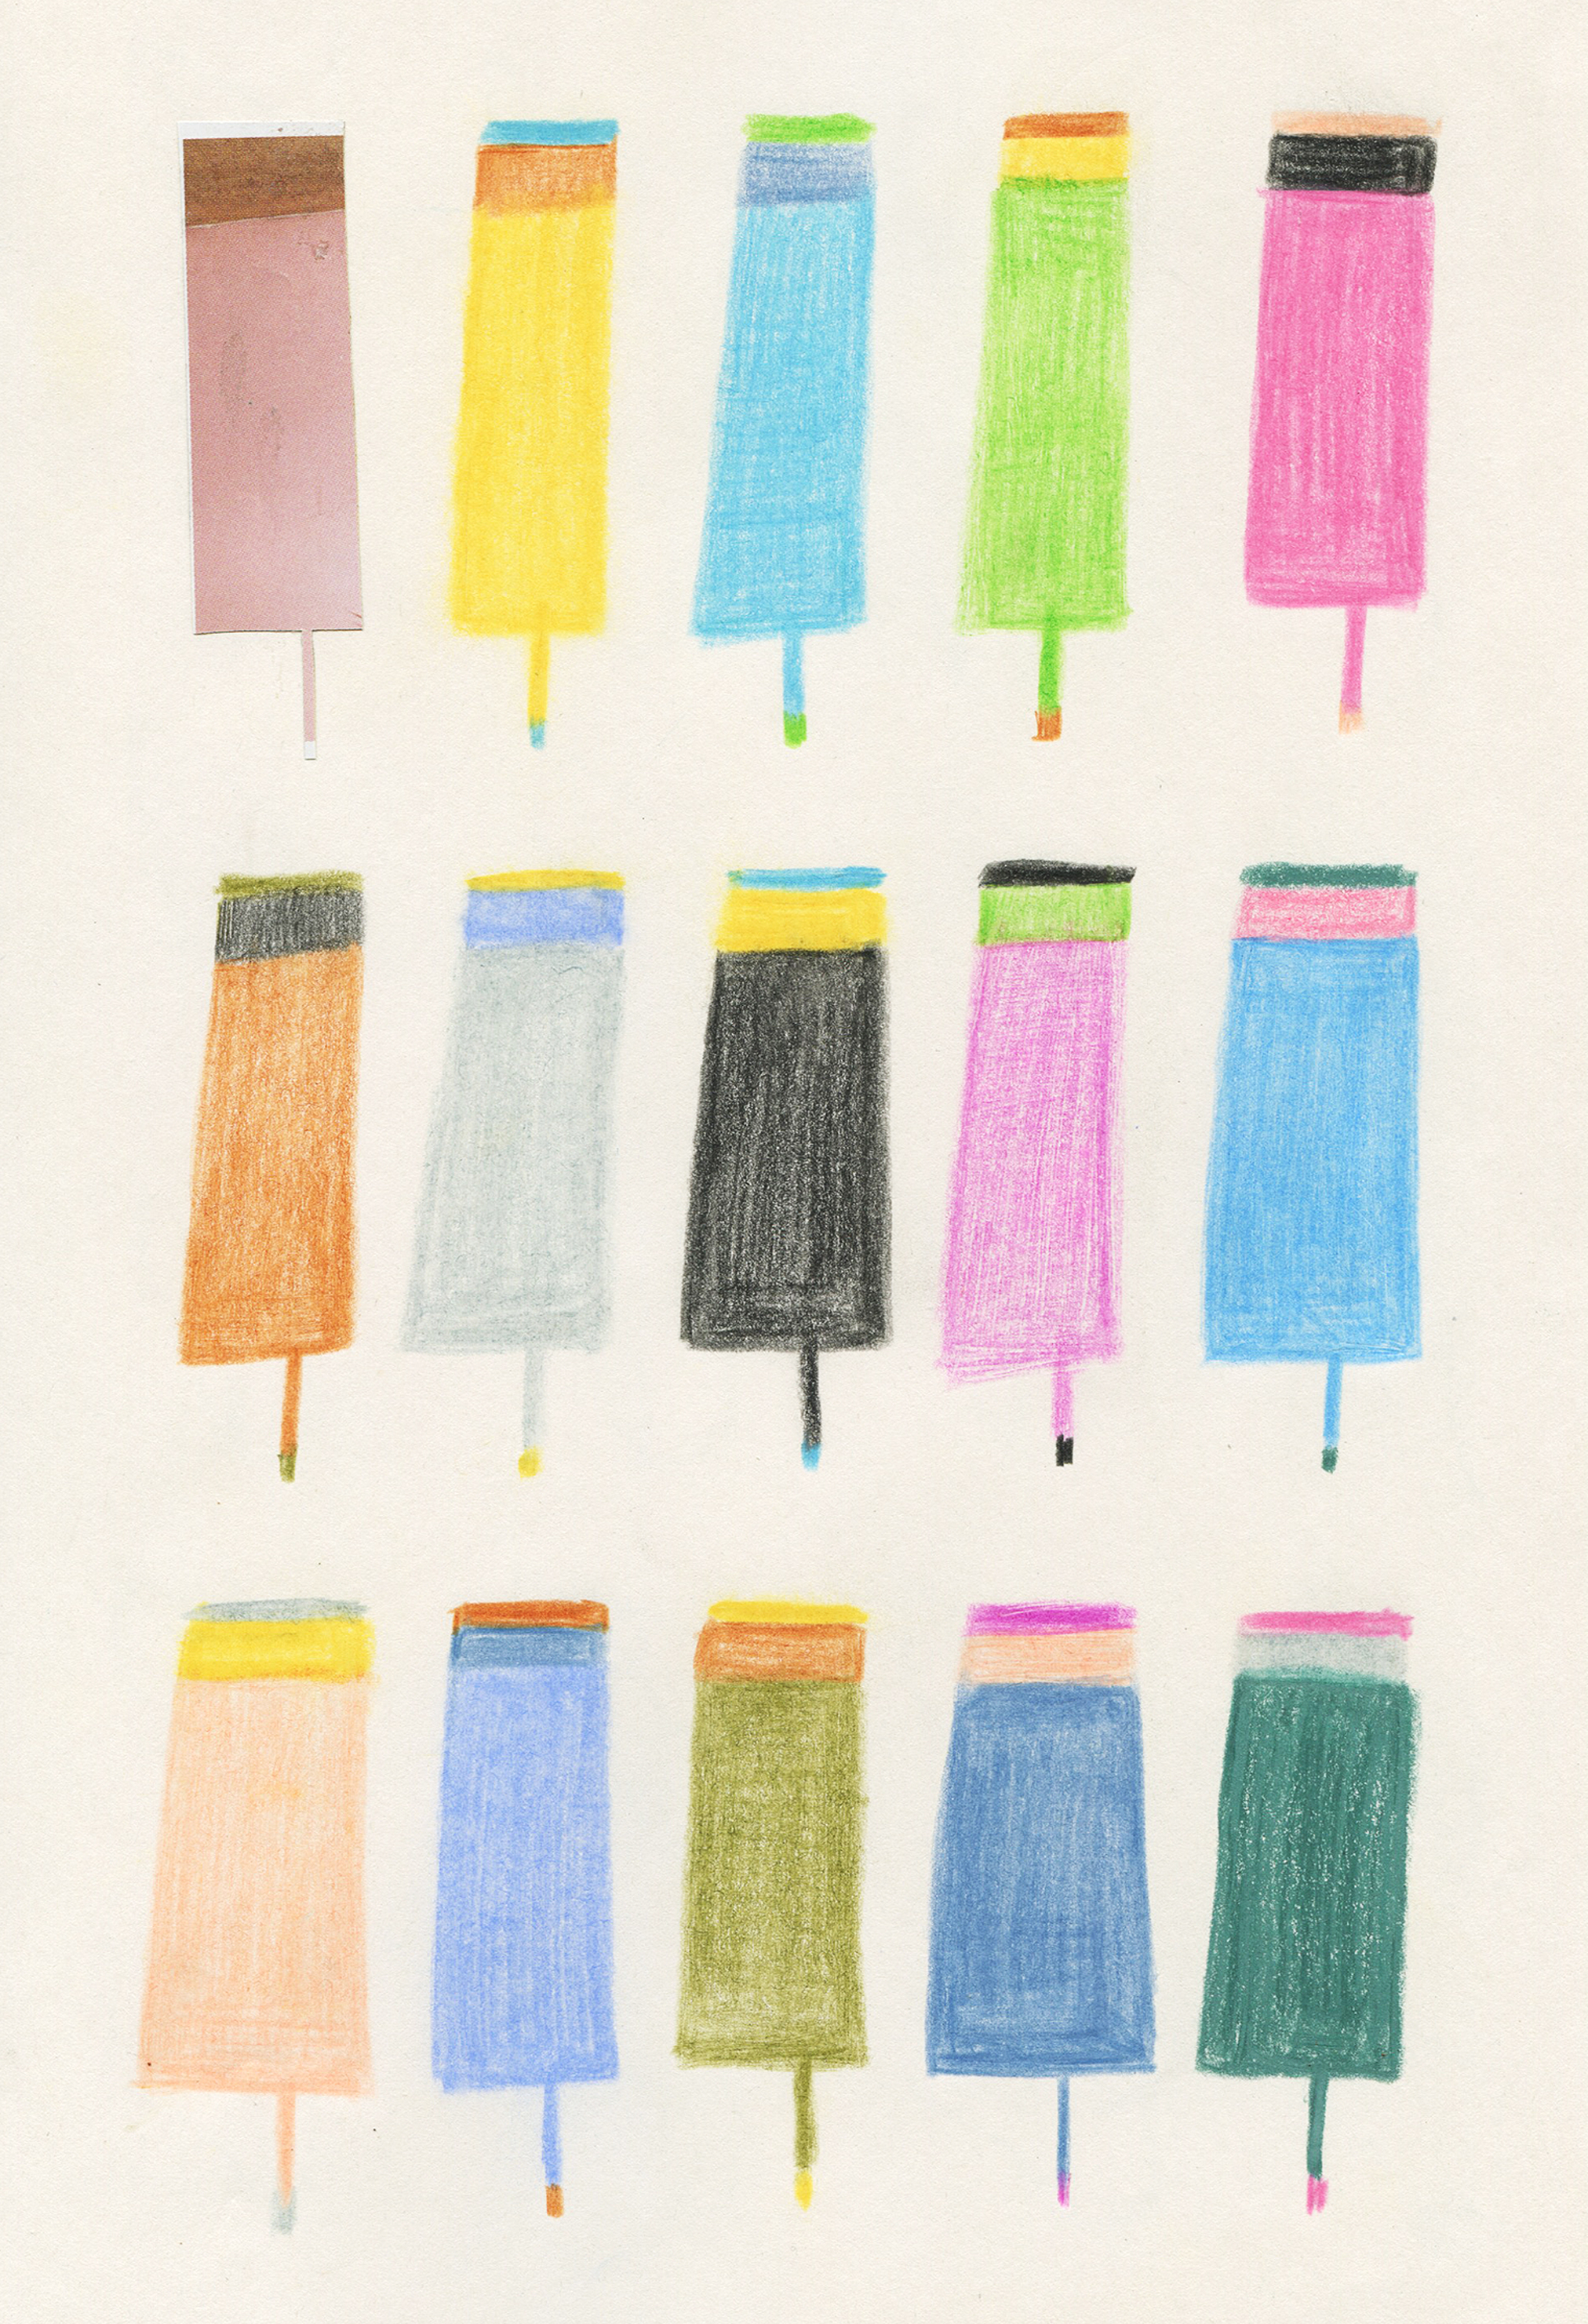 Colorful Ice Pops